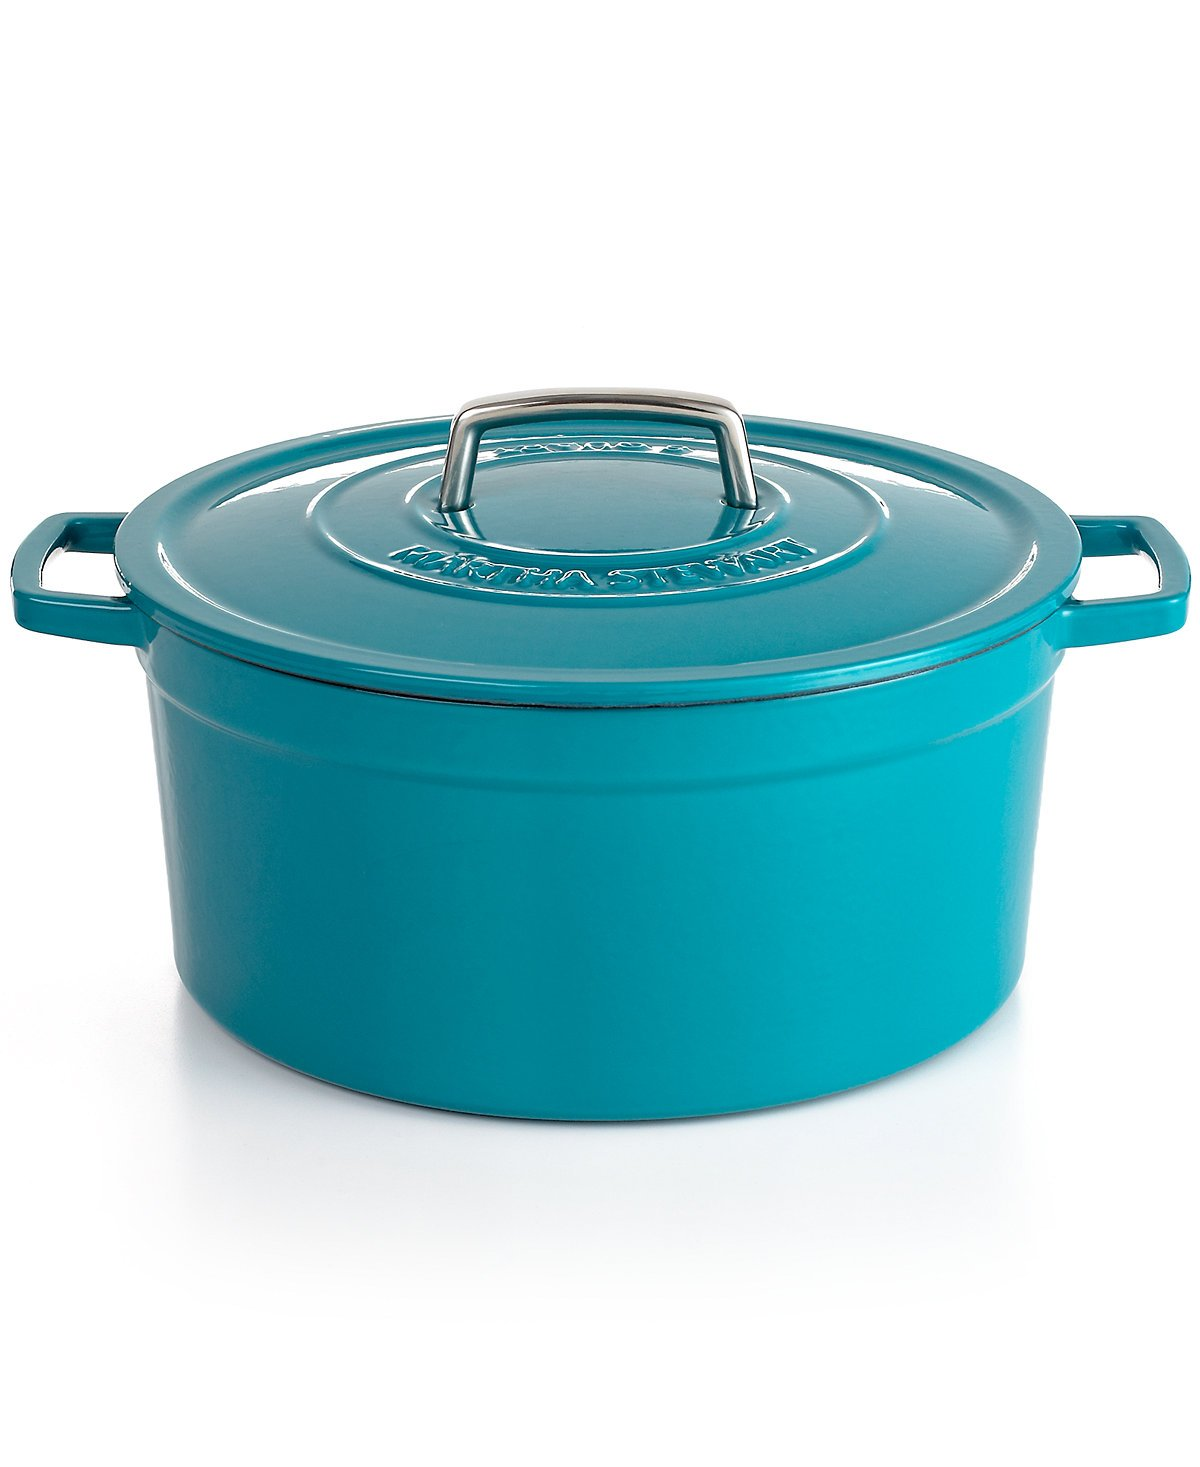 Collector's Enamled Cast Iron 8 QT. Cookware Pot For Multiuse | Exceptional Quality Cast Iron For Browning | Braising | Stewing | Casseroles & Much More | By Martha Stewart (Teal)